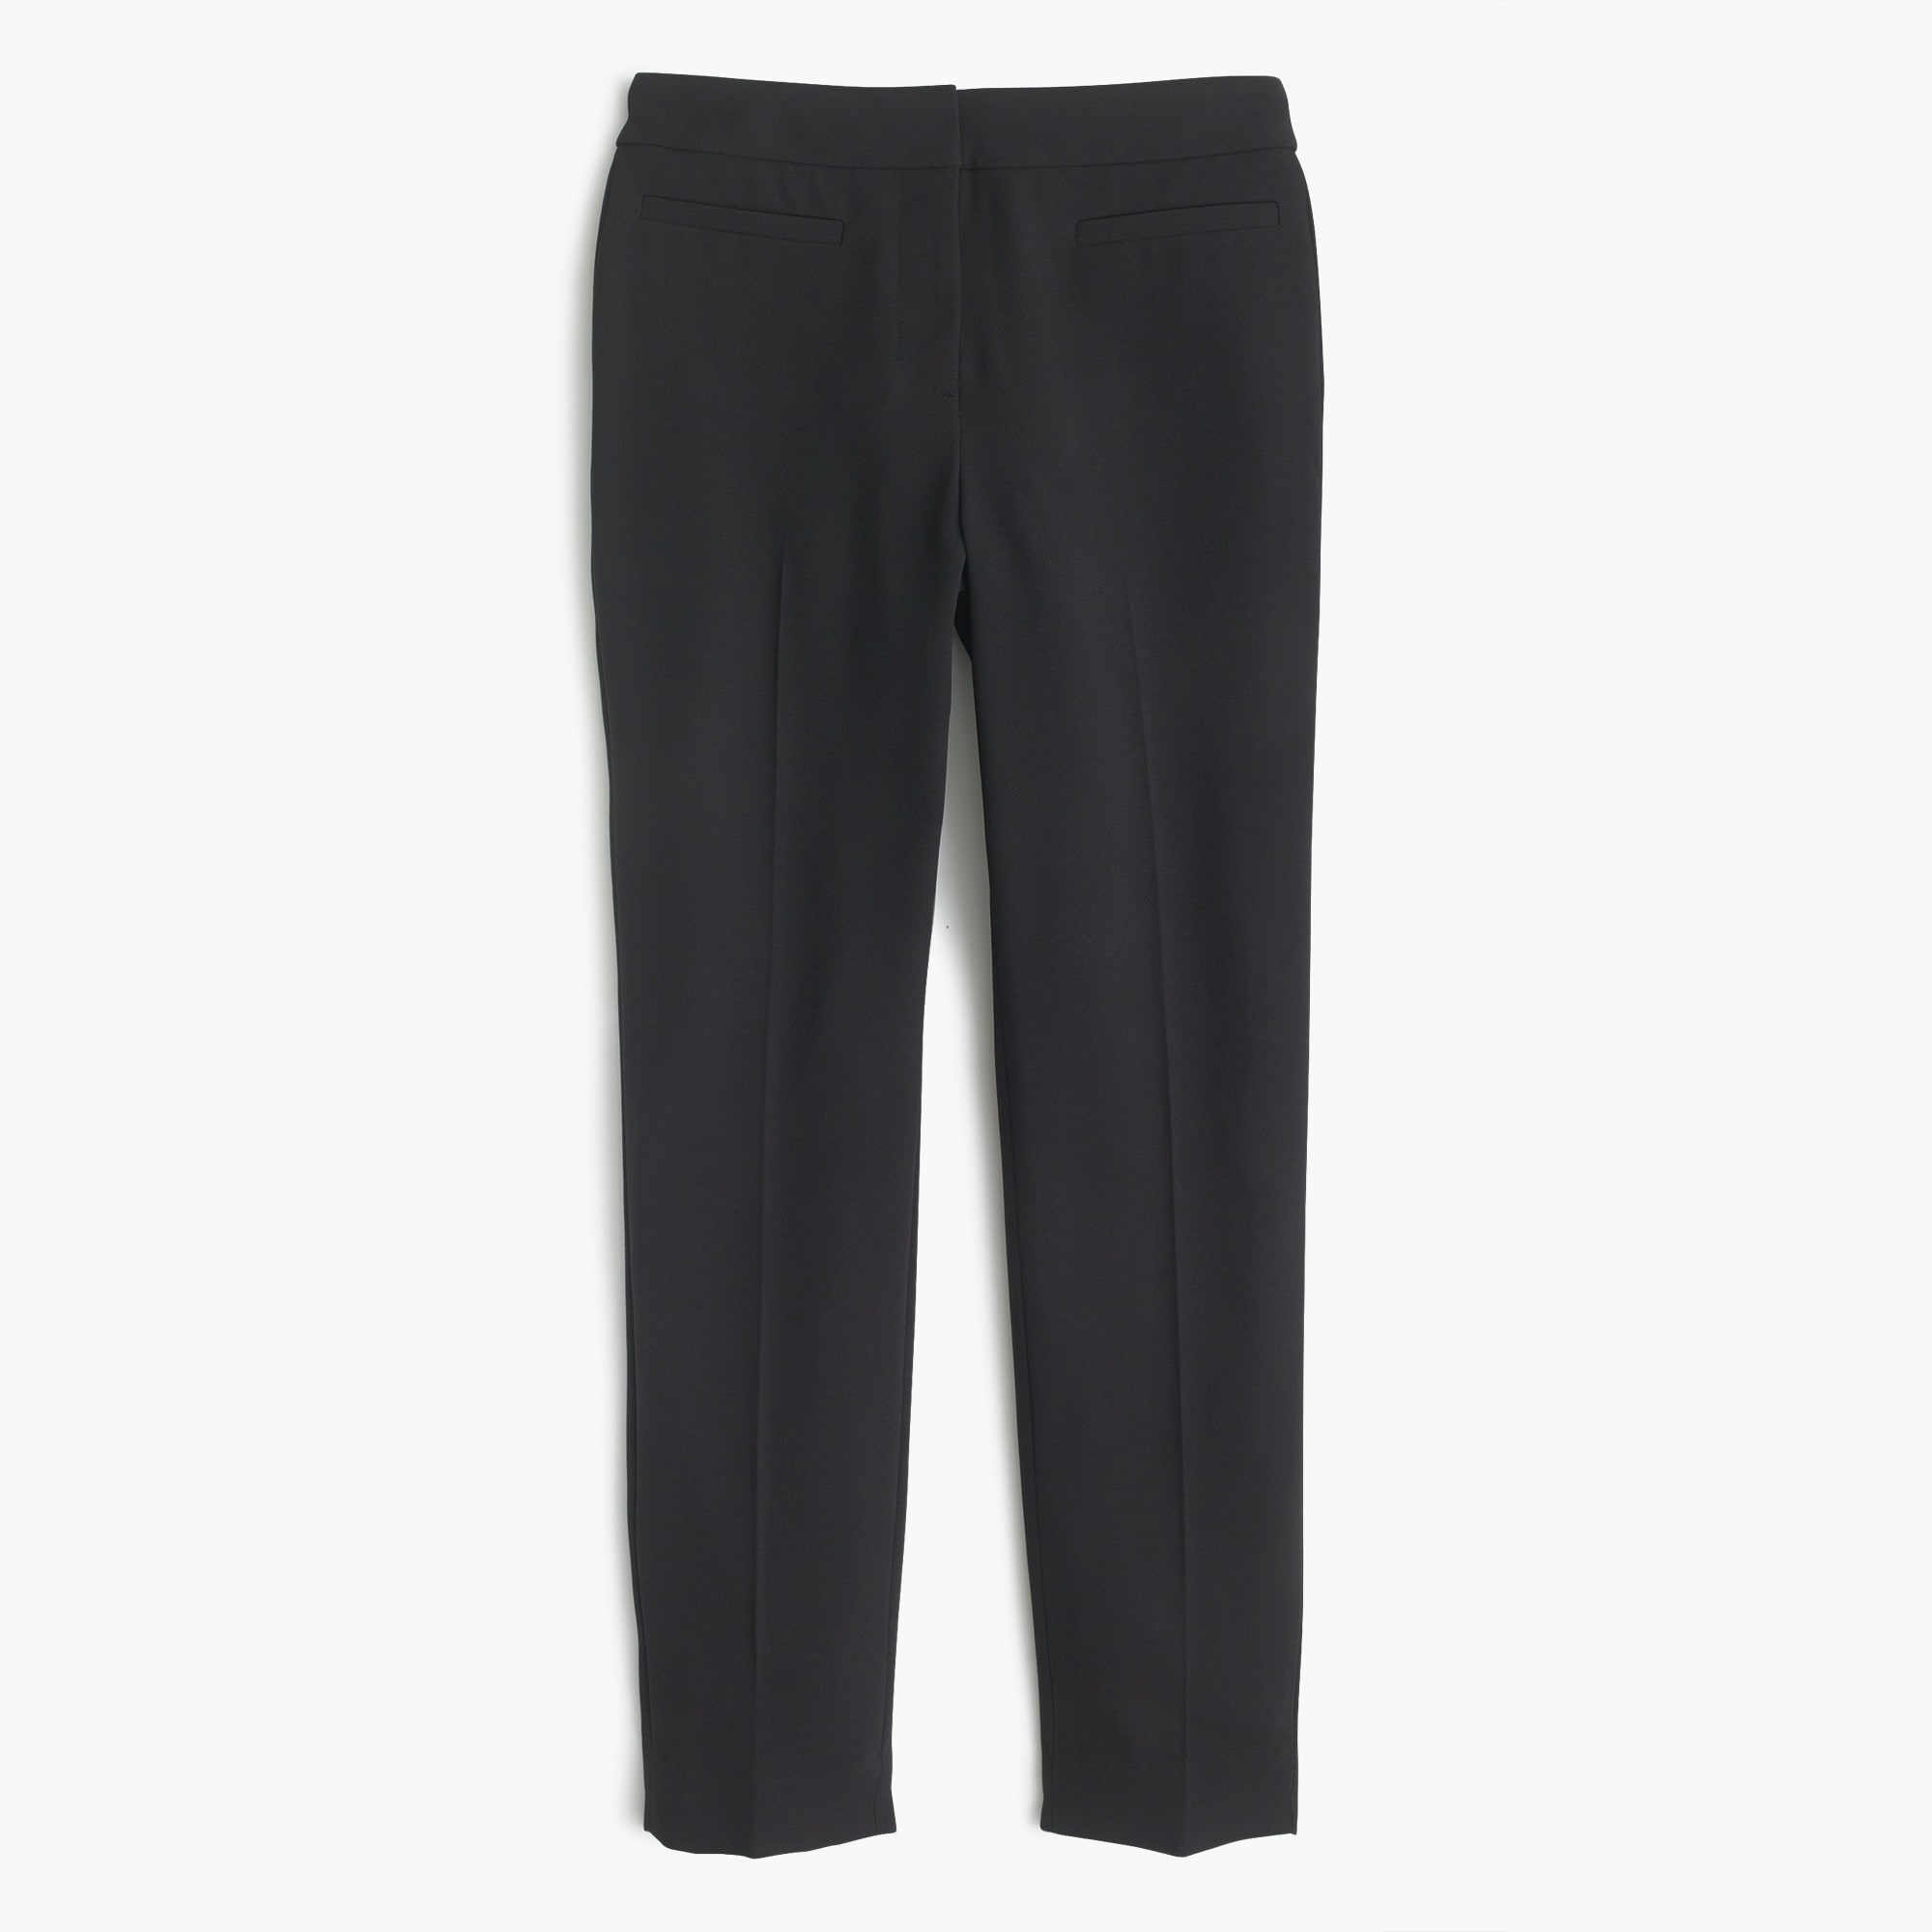 Image 2 for Tall French girl slim crop pant in 365 crepe